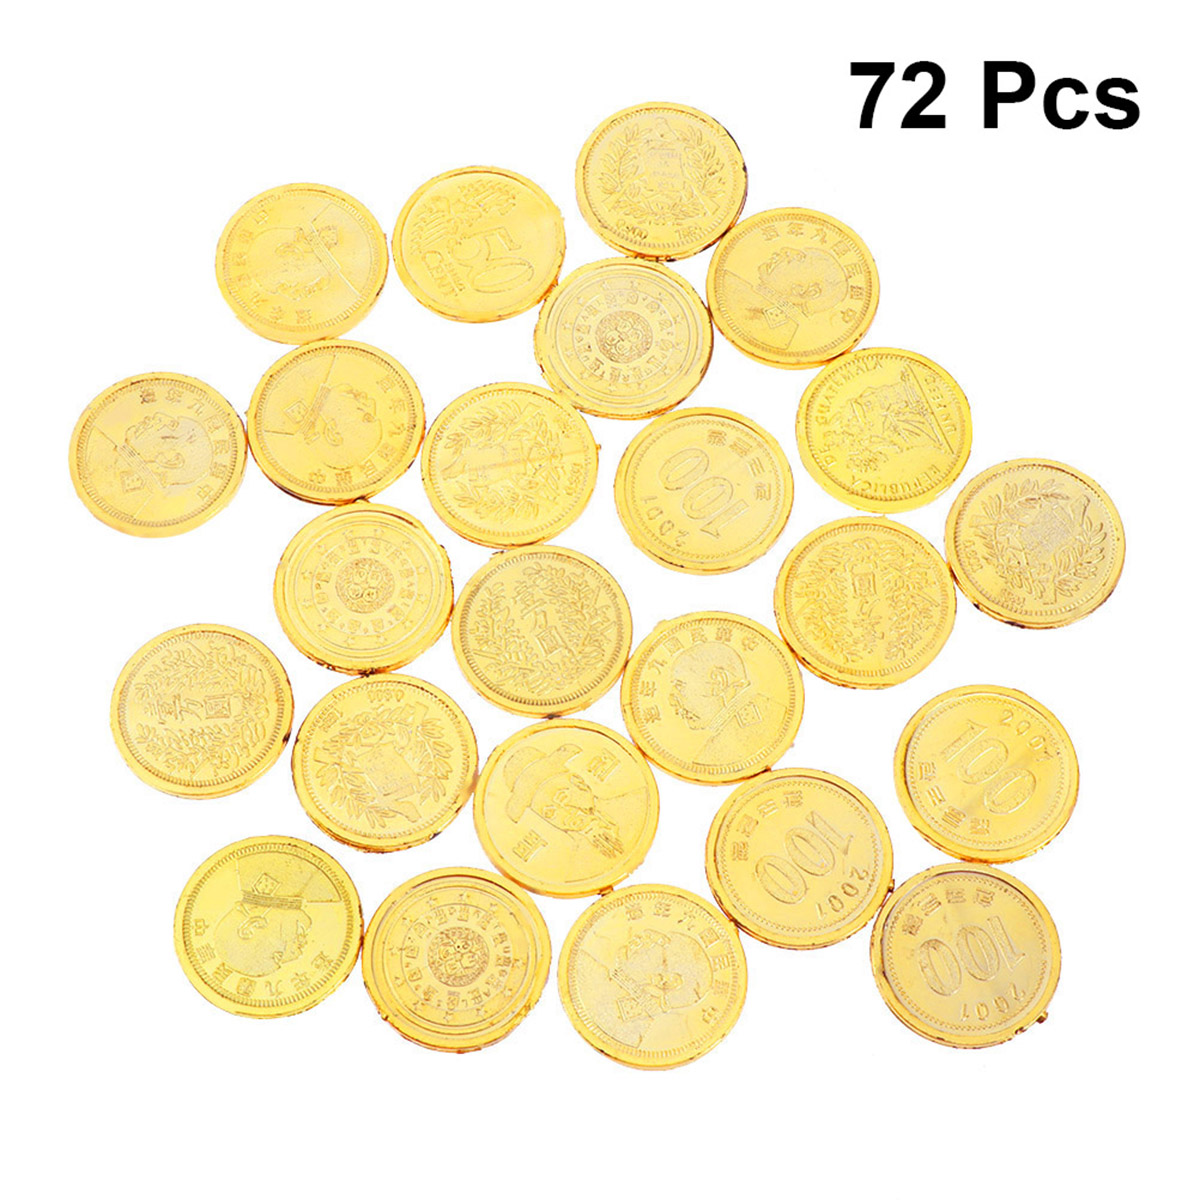 24/48/72pcs Plastic Gold Coins Imitate Pirates Chips Currency Toy Playset Game Props For Children Kids